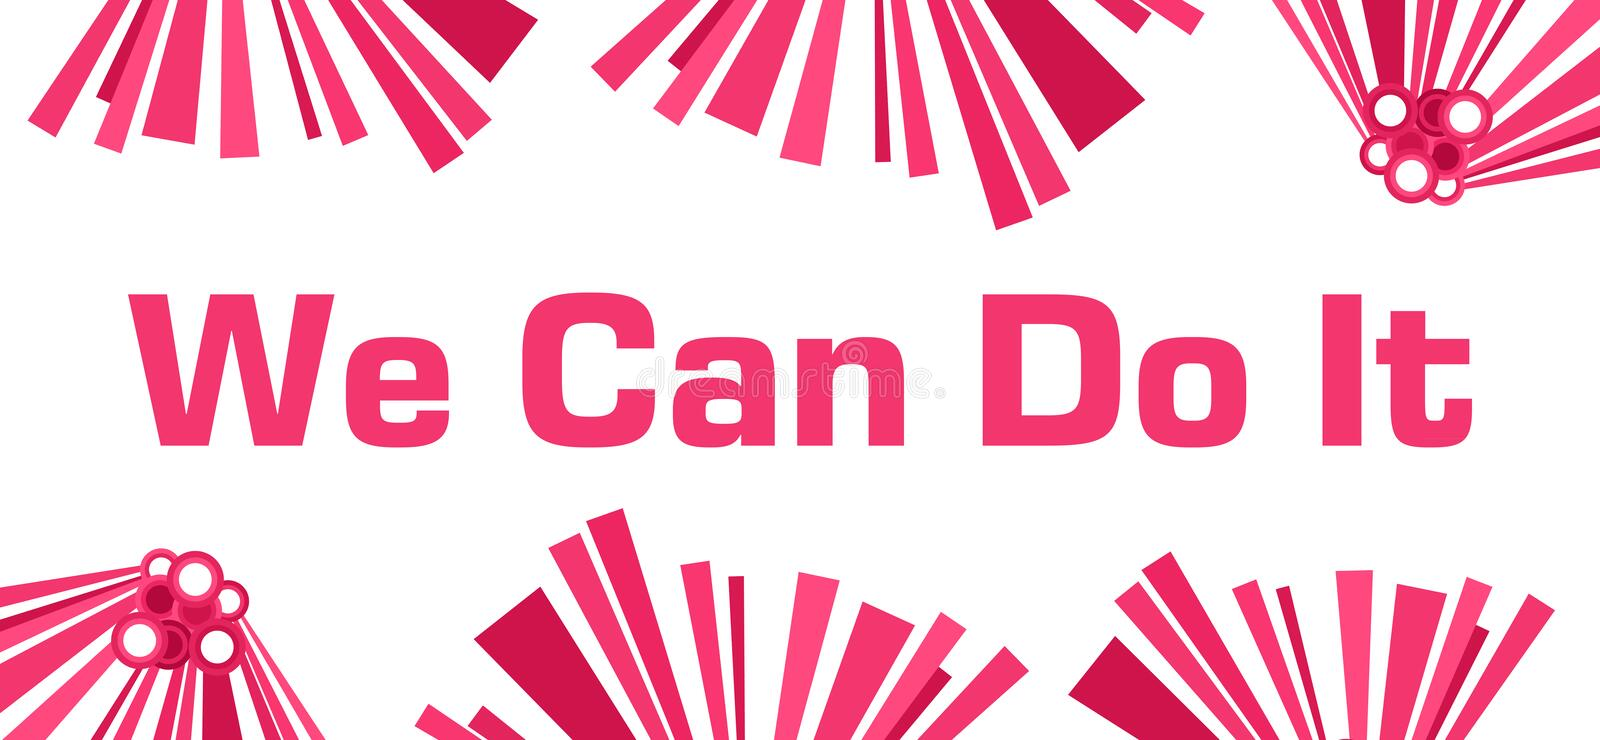 We Can Do It Pink Abstract White royalty free illustration